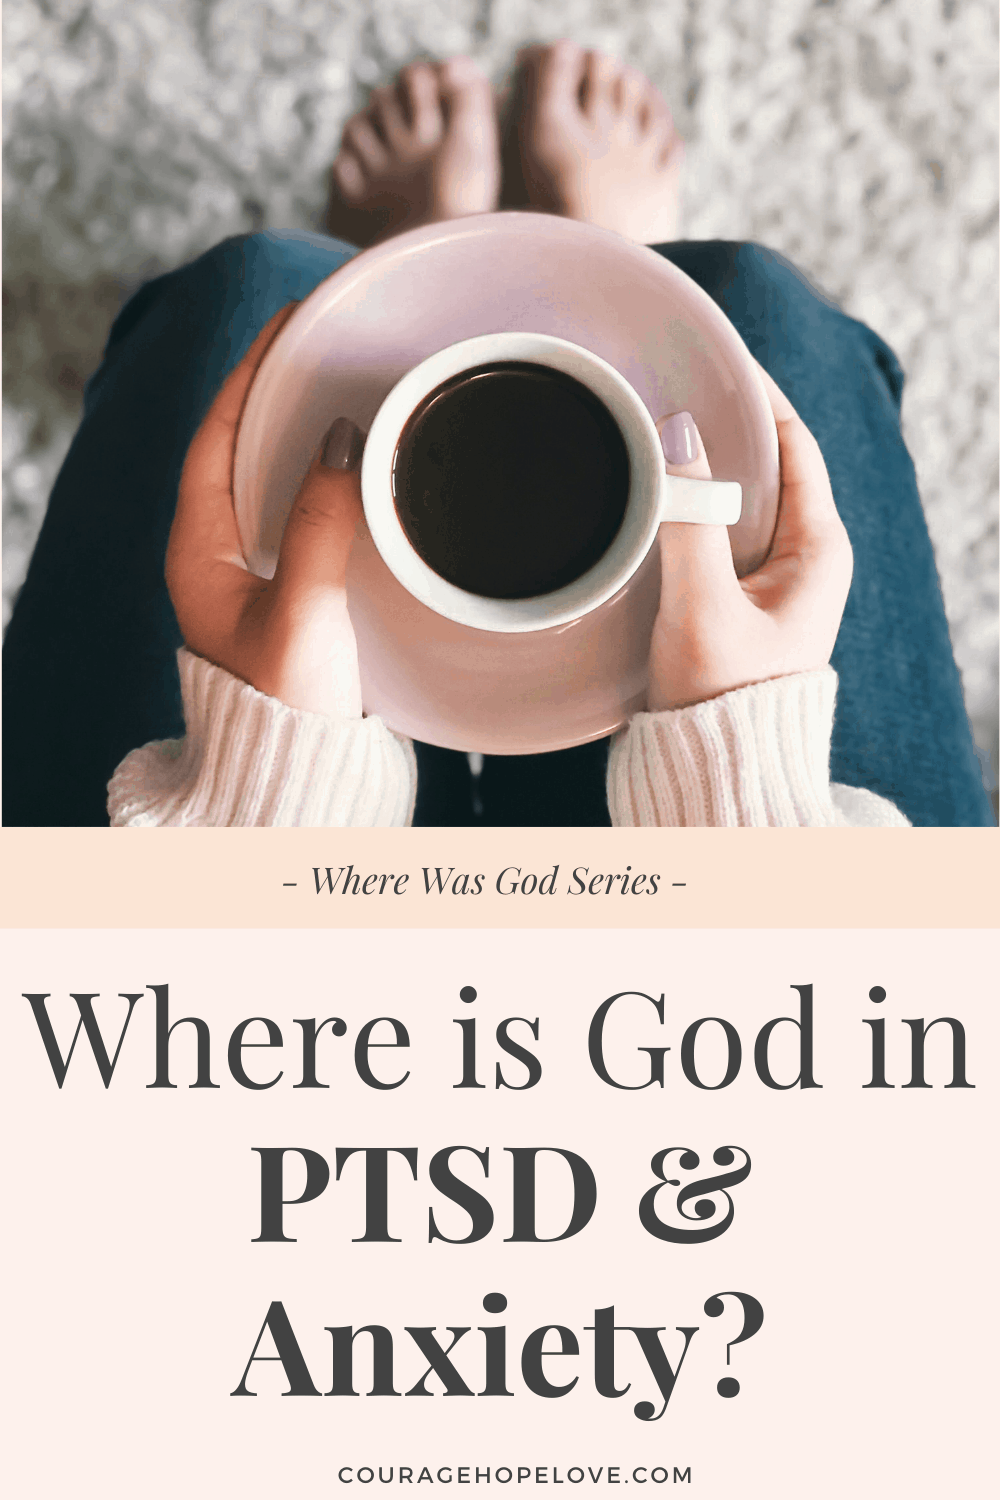 Where is God in PTSD & Anxiety?